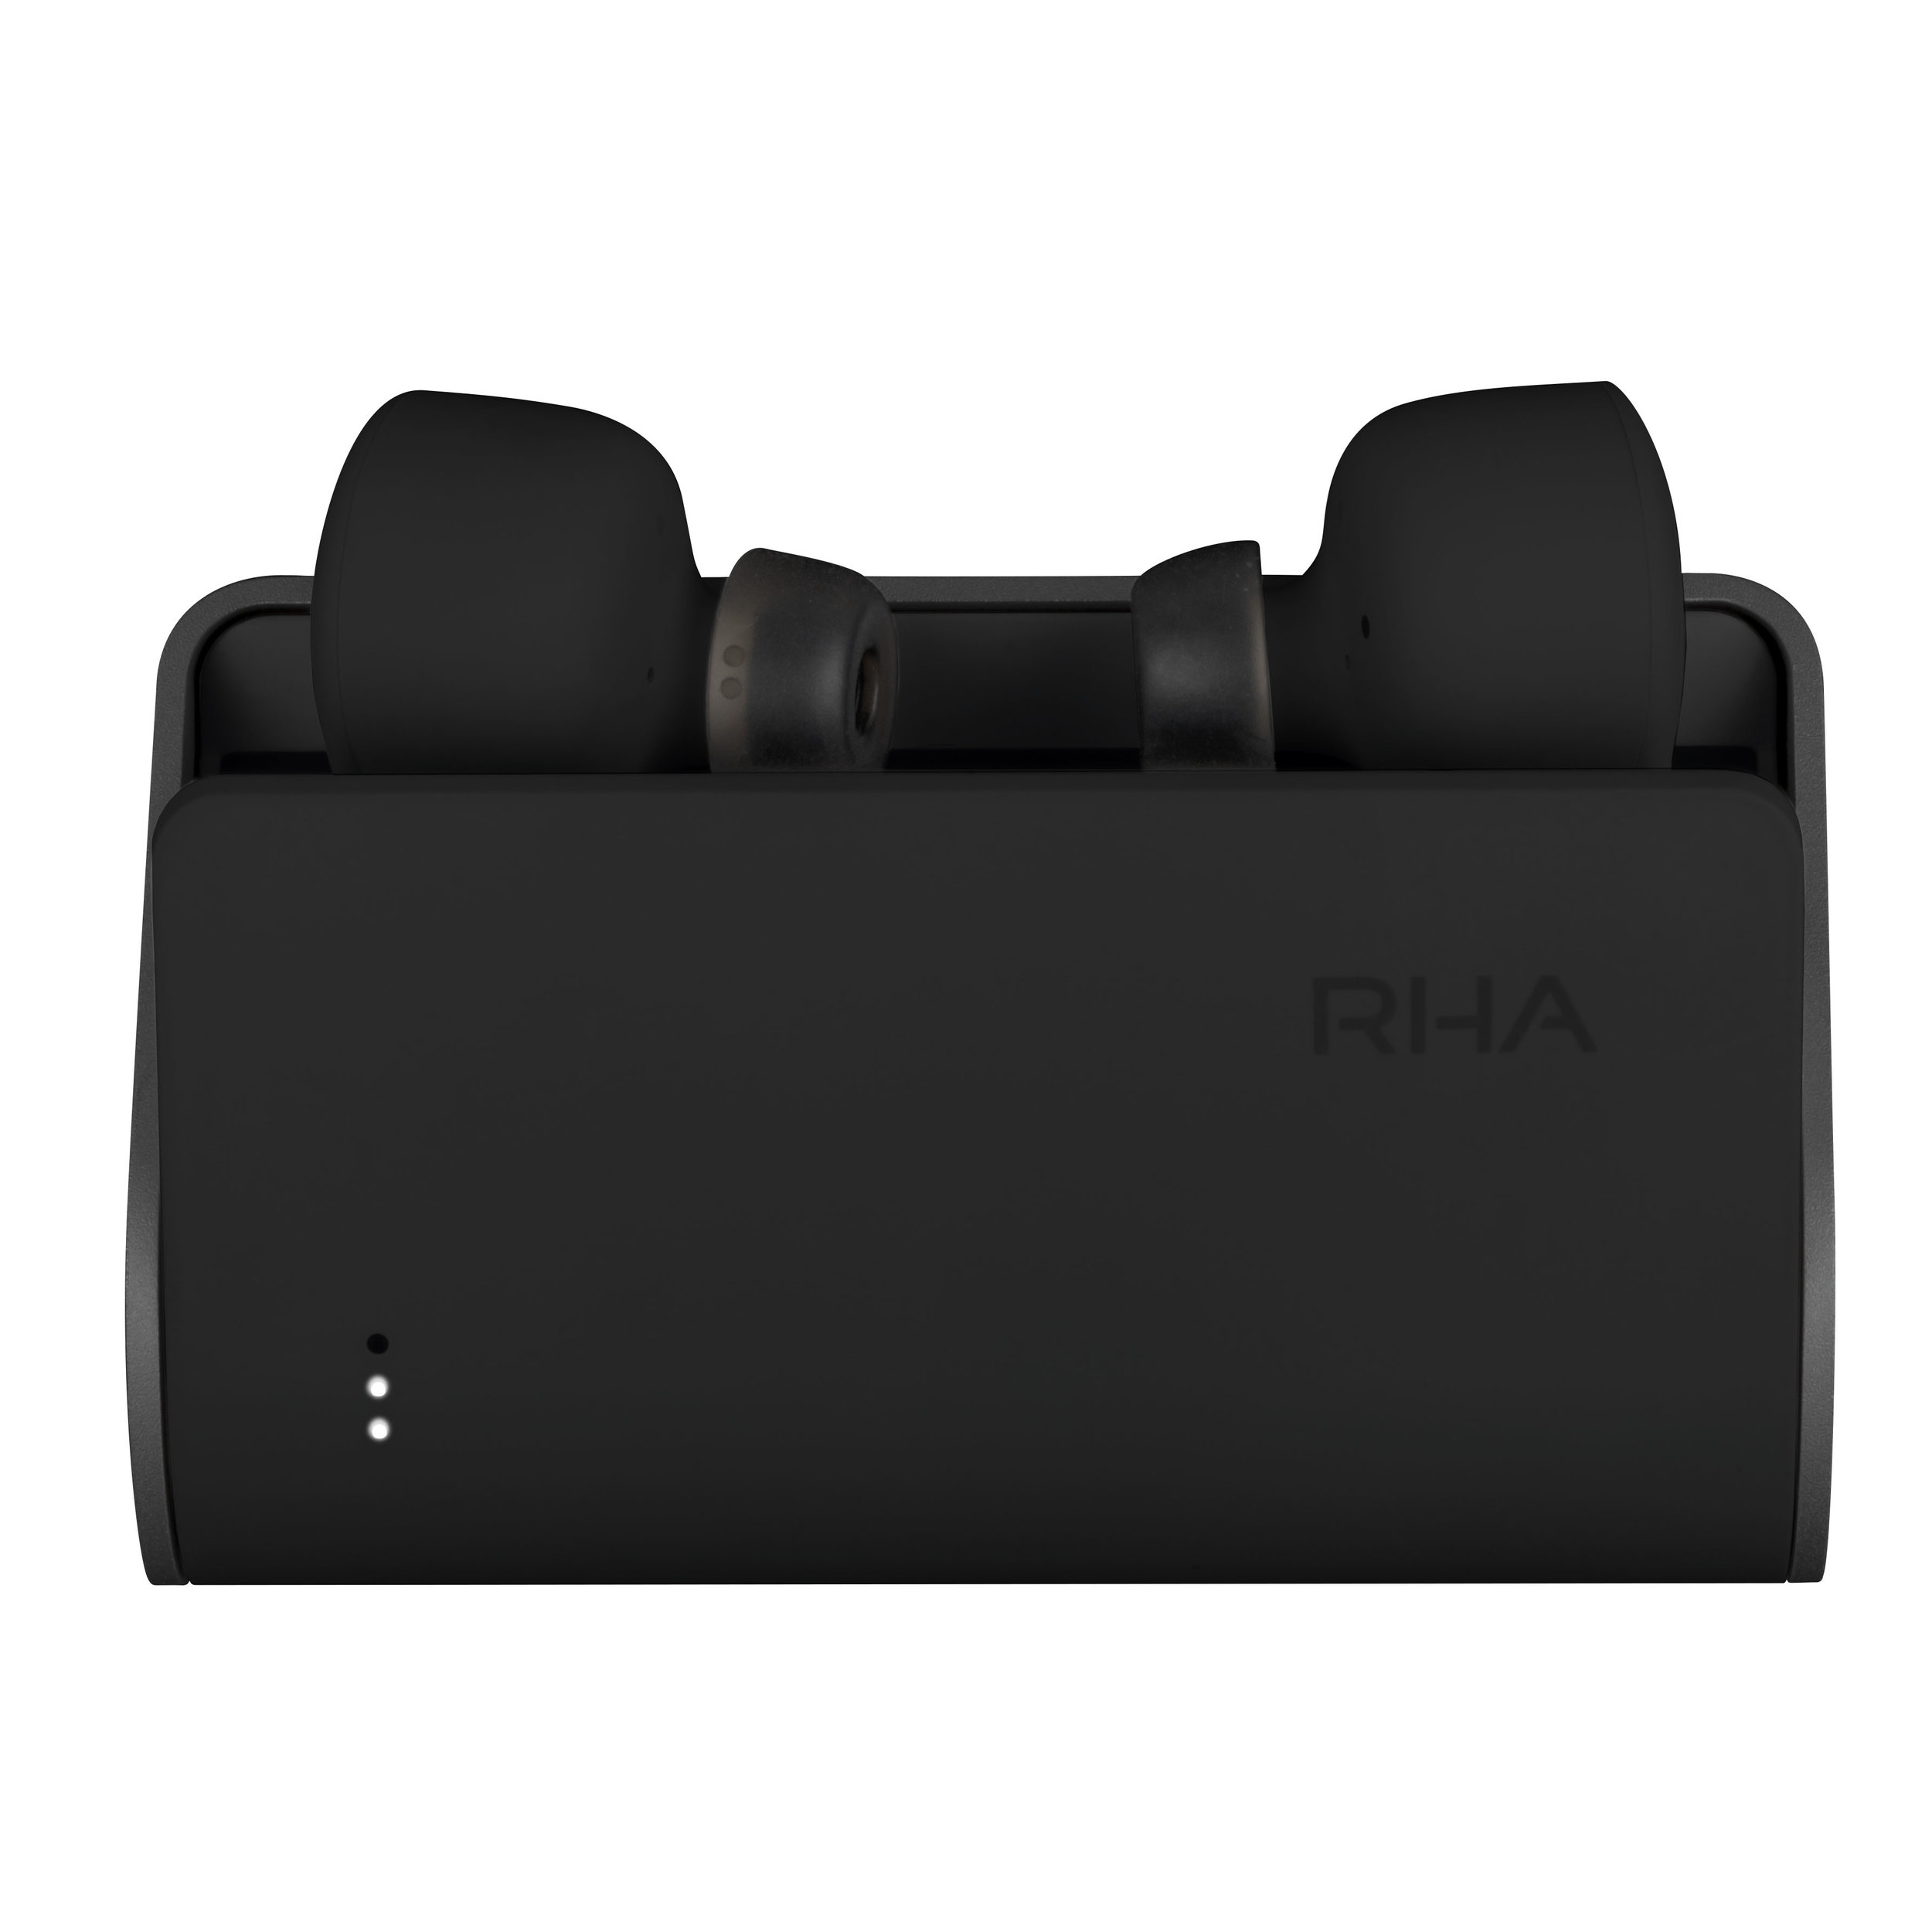 RHA_TrueConnectPackaging_190508_MRP_0040.jpg